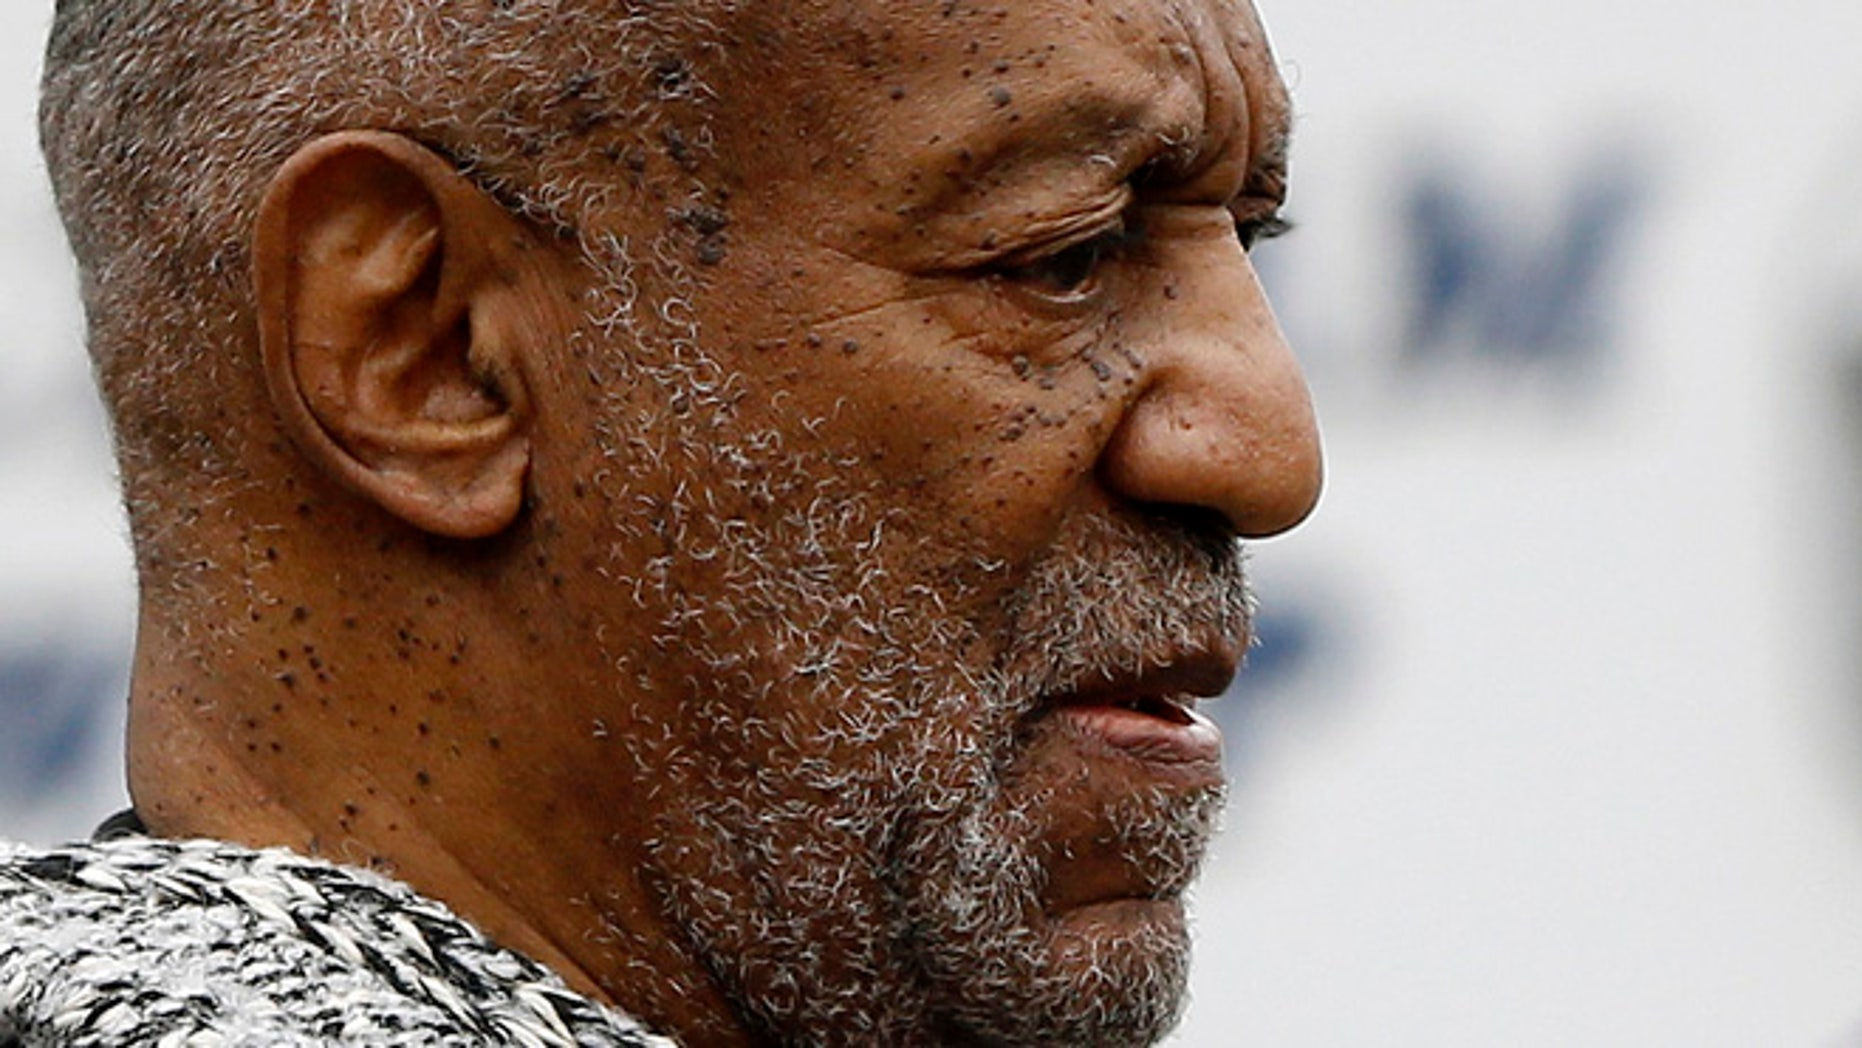 Dec. 30, 2015. Bill Cosby leaves the Cheltenham Township Police Department where he was processed after being arraigned on a felony charge of aggravated indecent assault in Elkins Park, Pa.